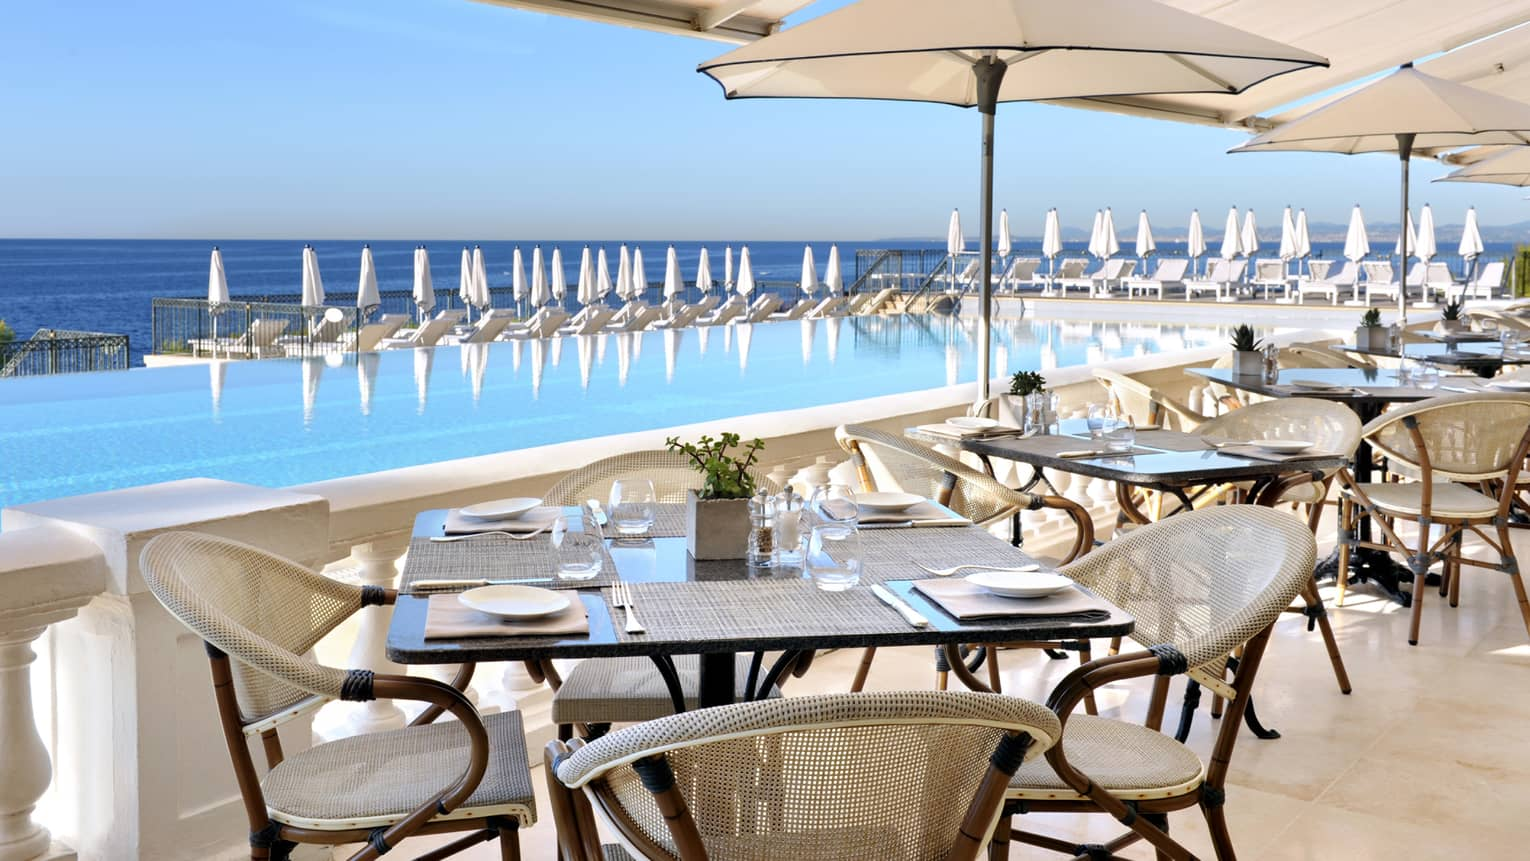 Club Dauphin patio dining tables by outdoor blue swimming pool, sea views